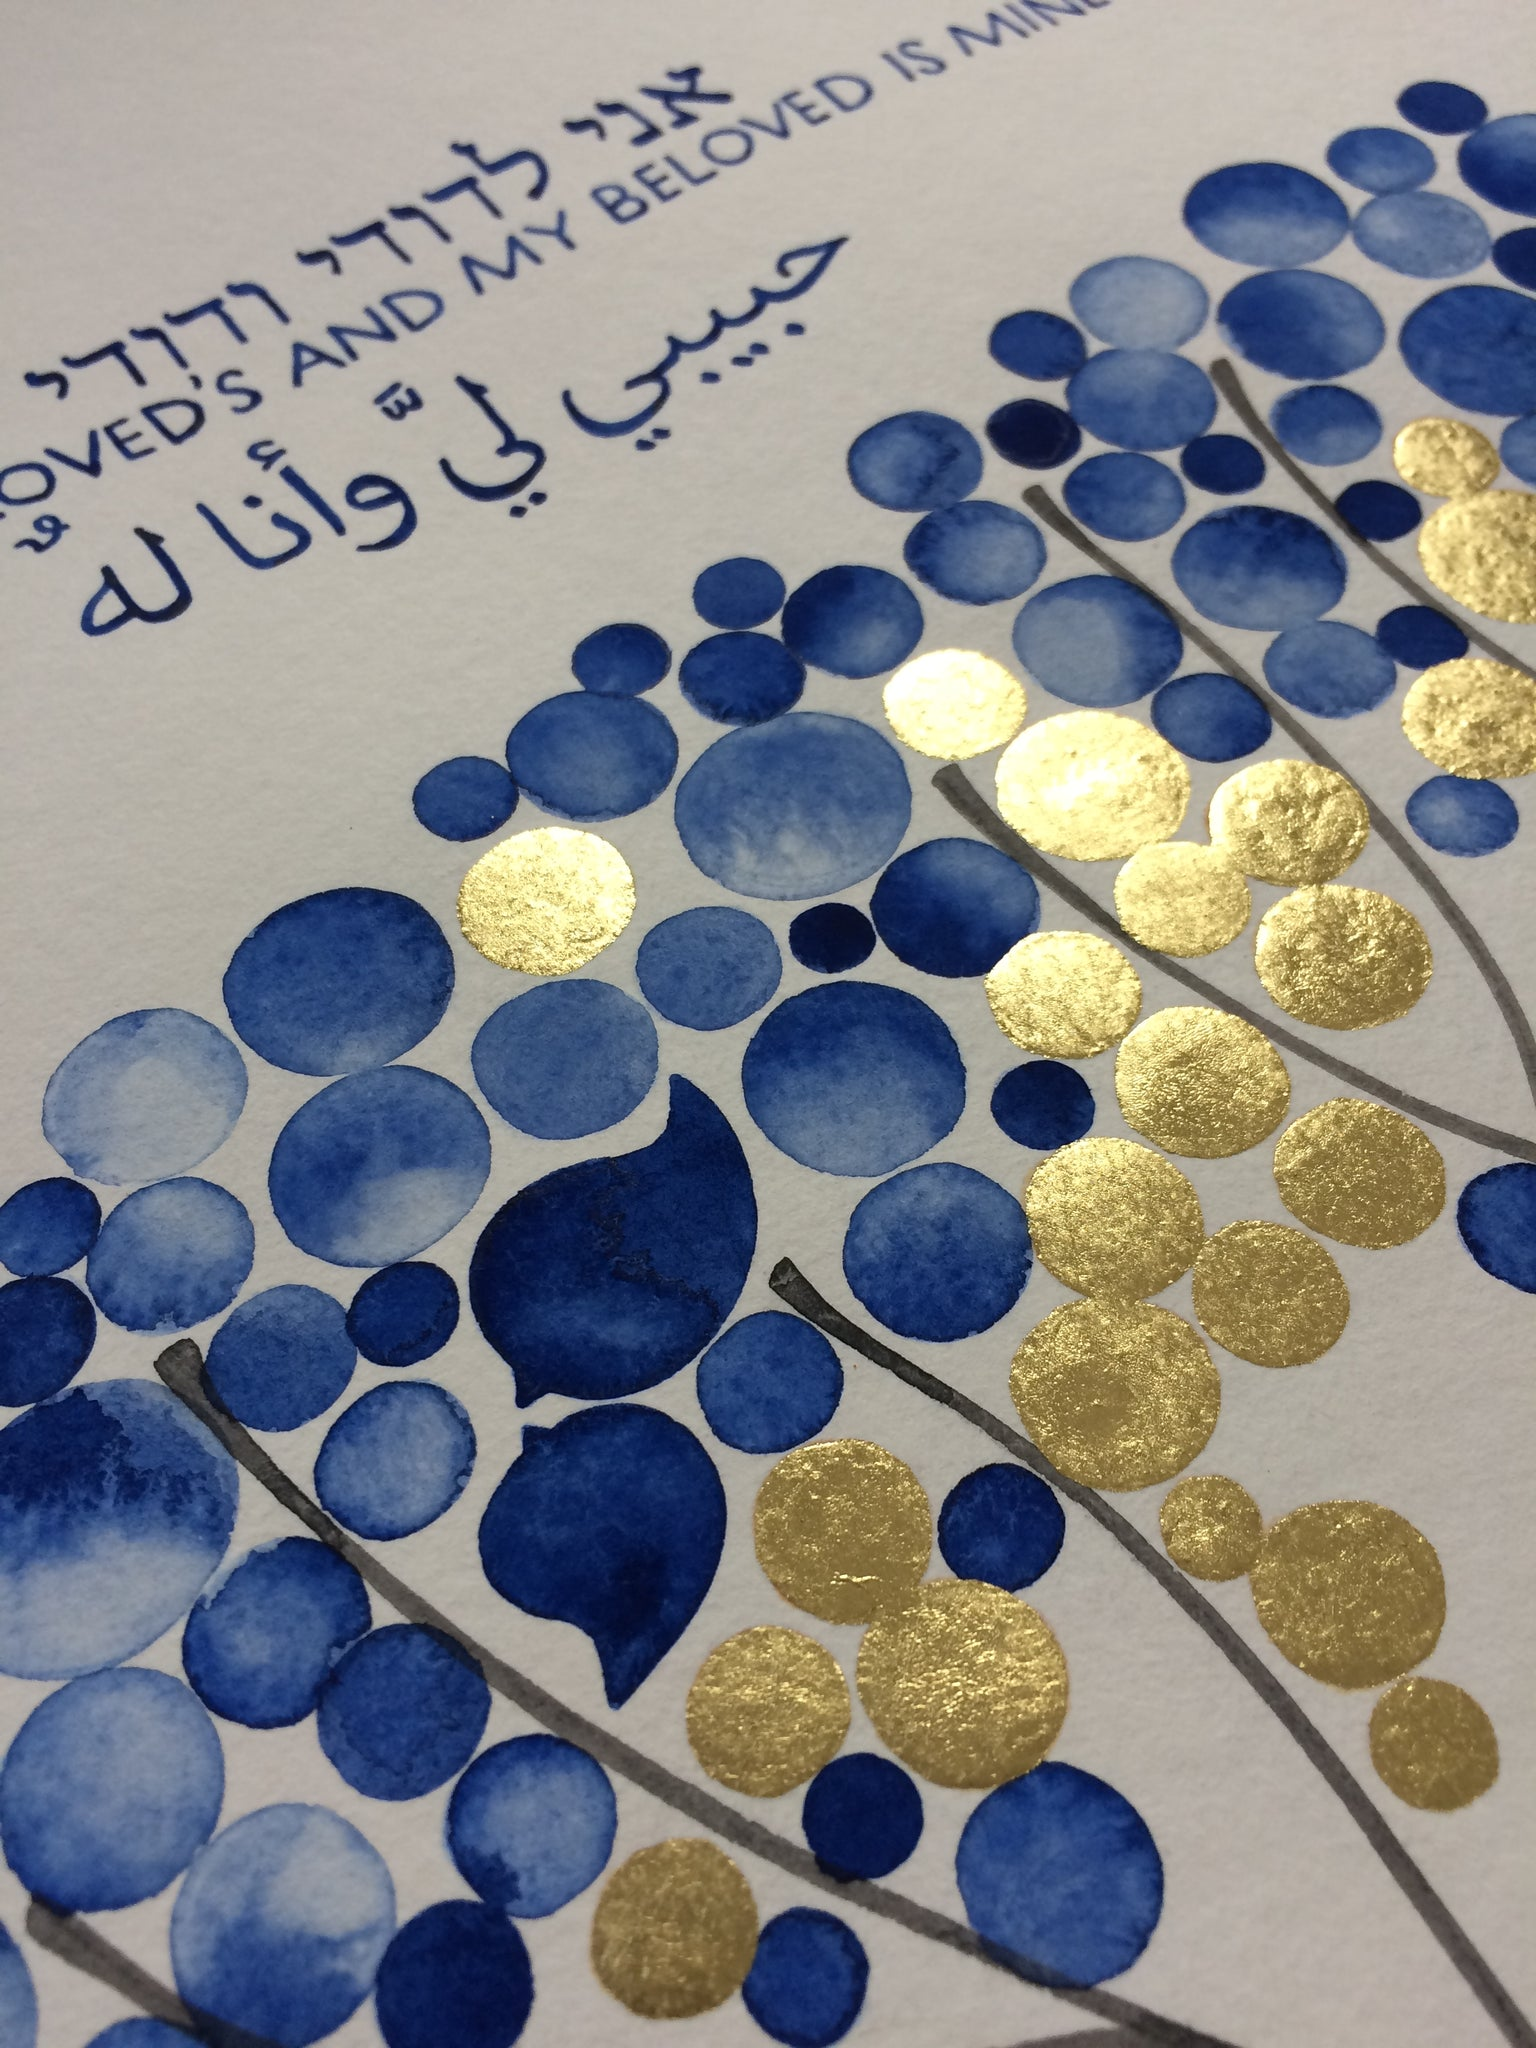 Trilingual Ketubah with gold leaf watercolor painting